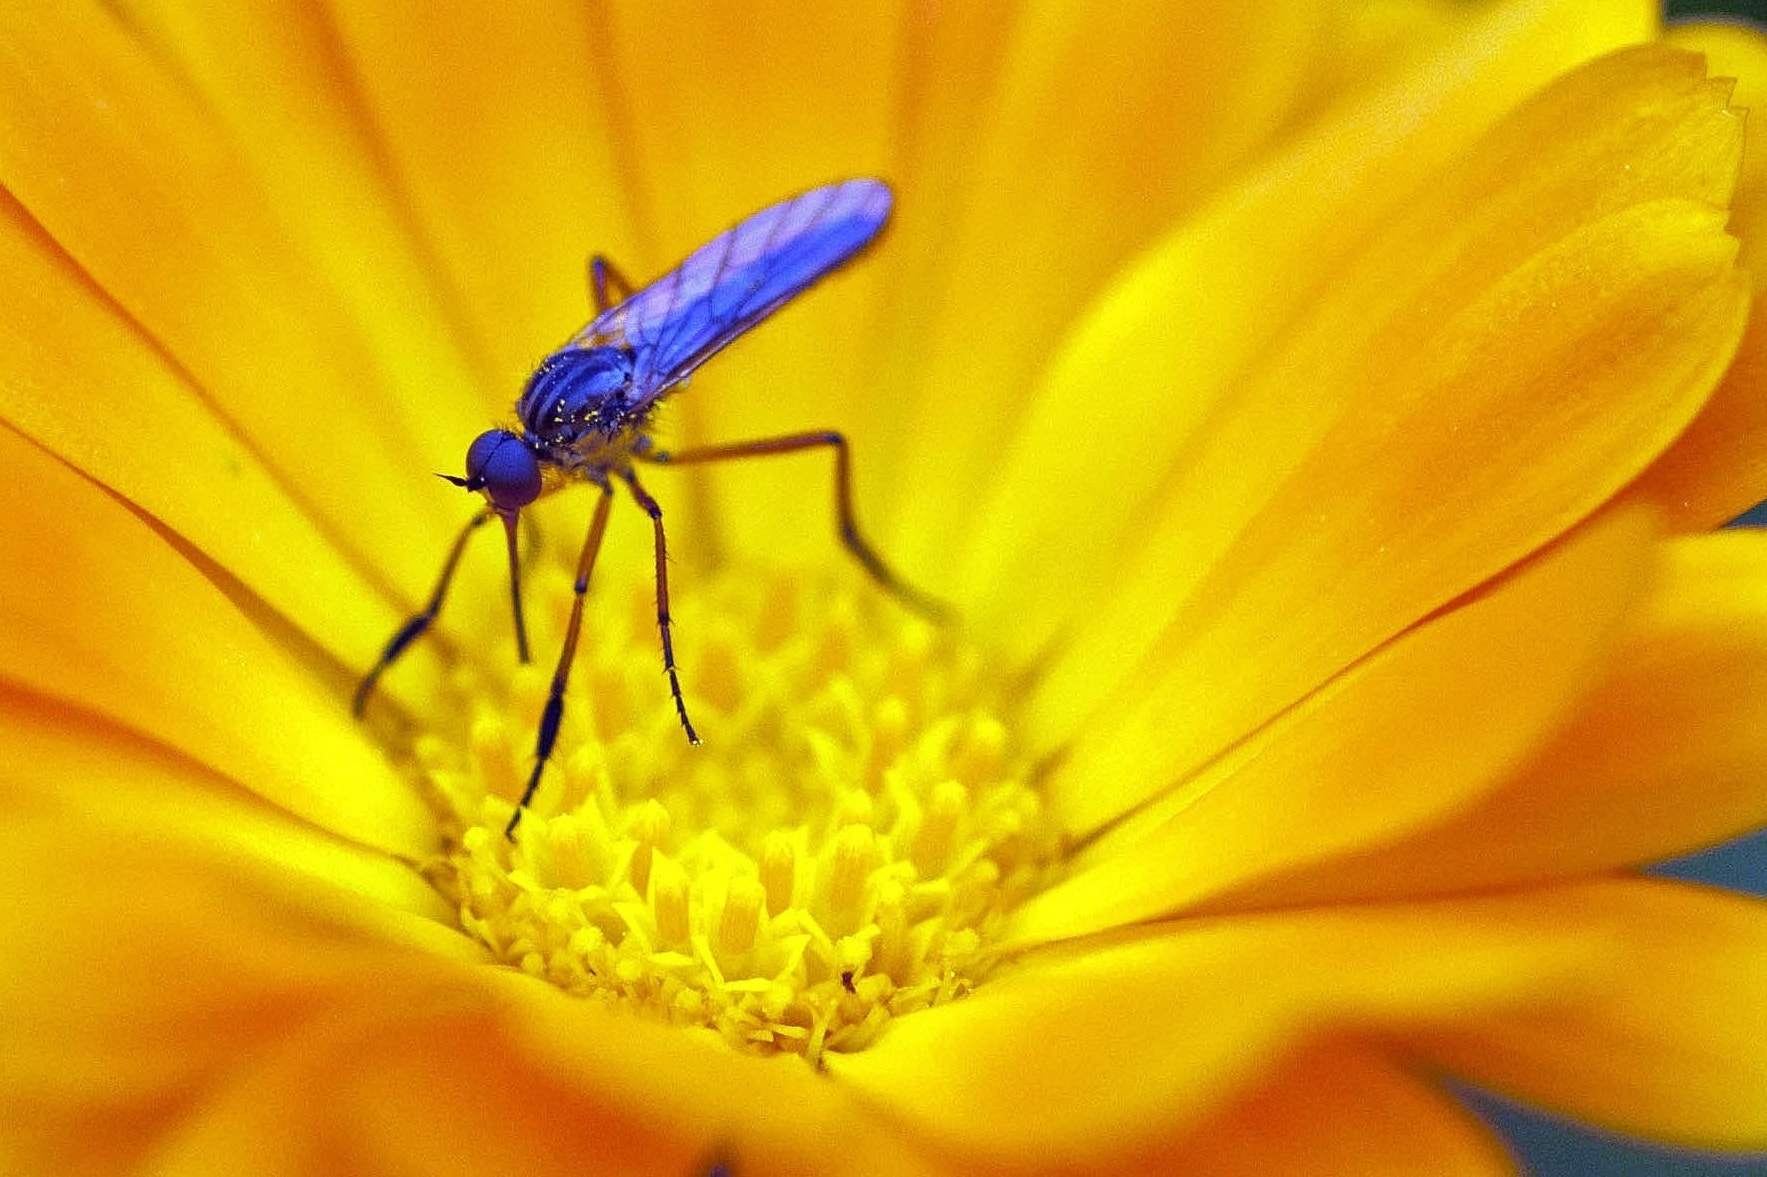 Photograph Yellow - Blue by Inmaculada Rodriguez on 500px